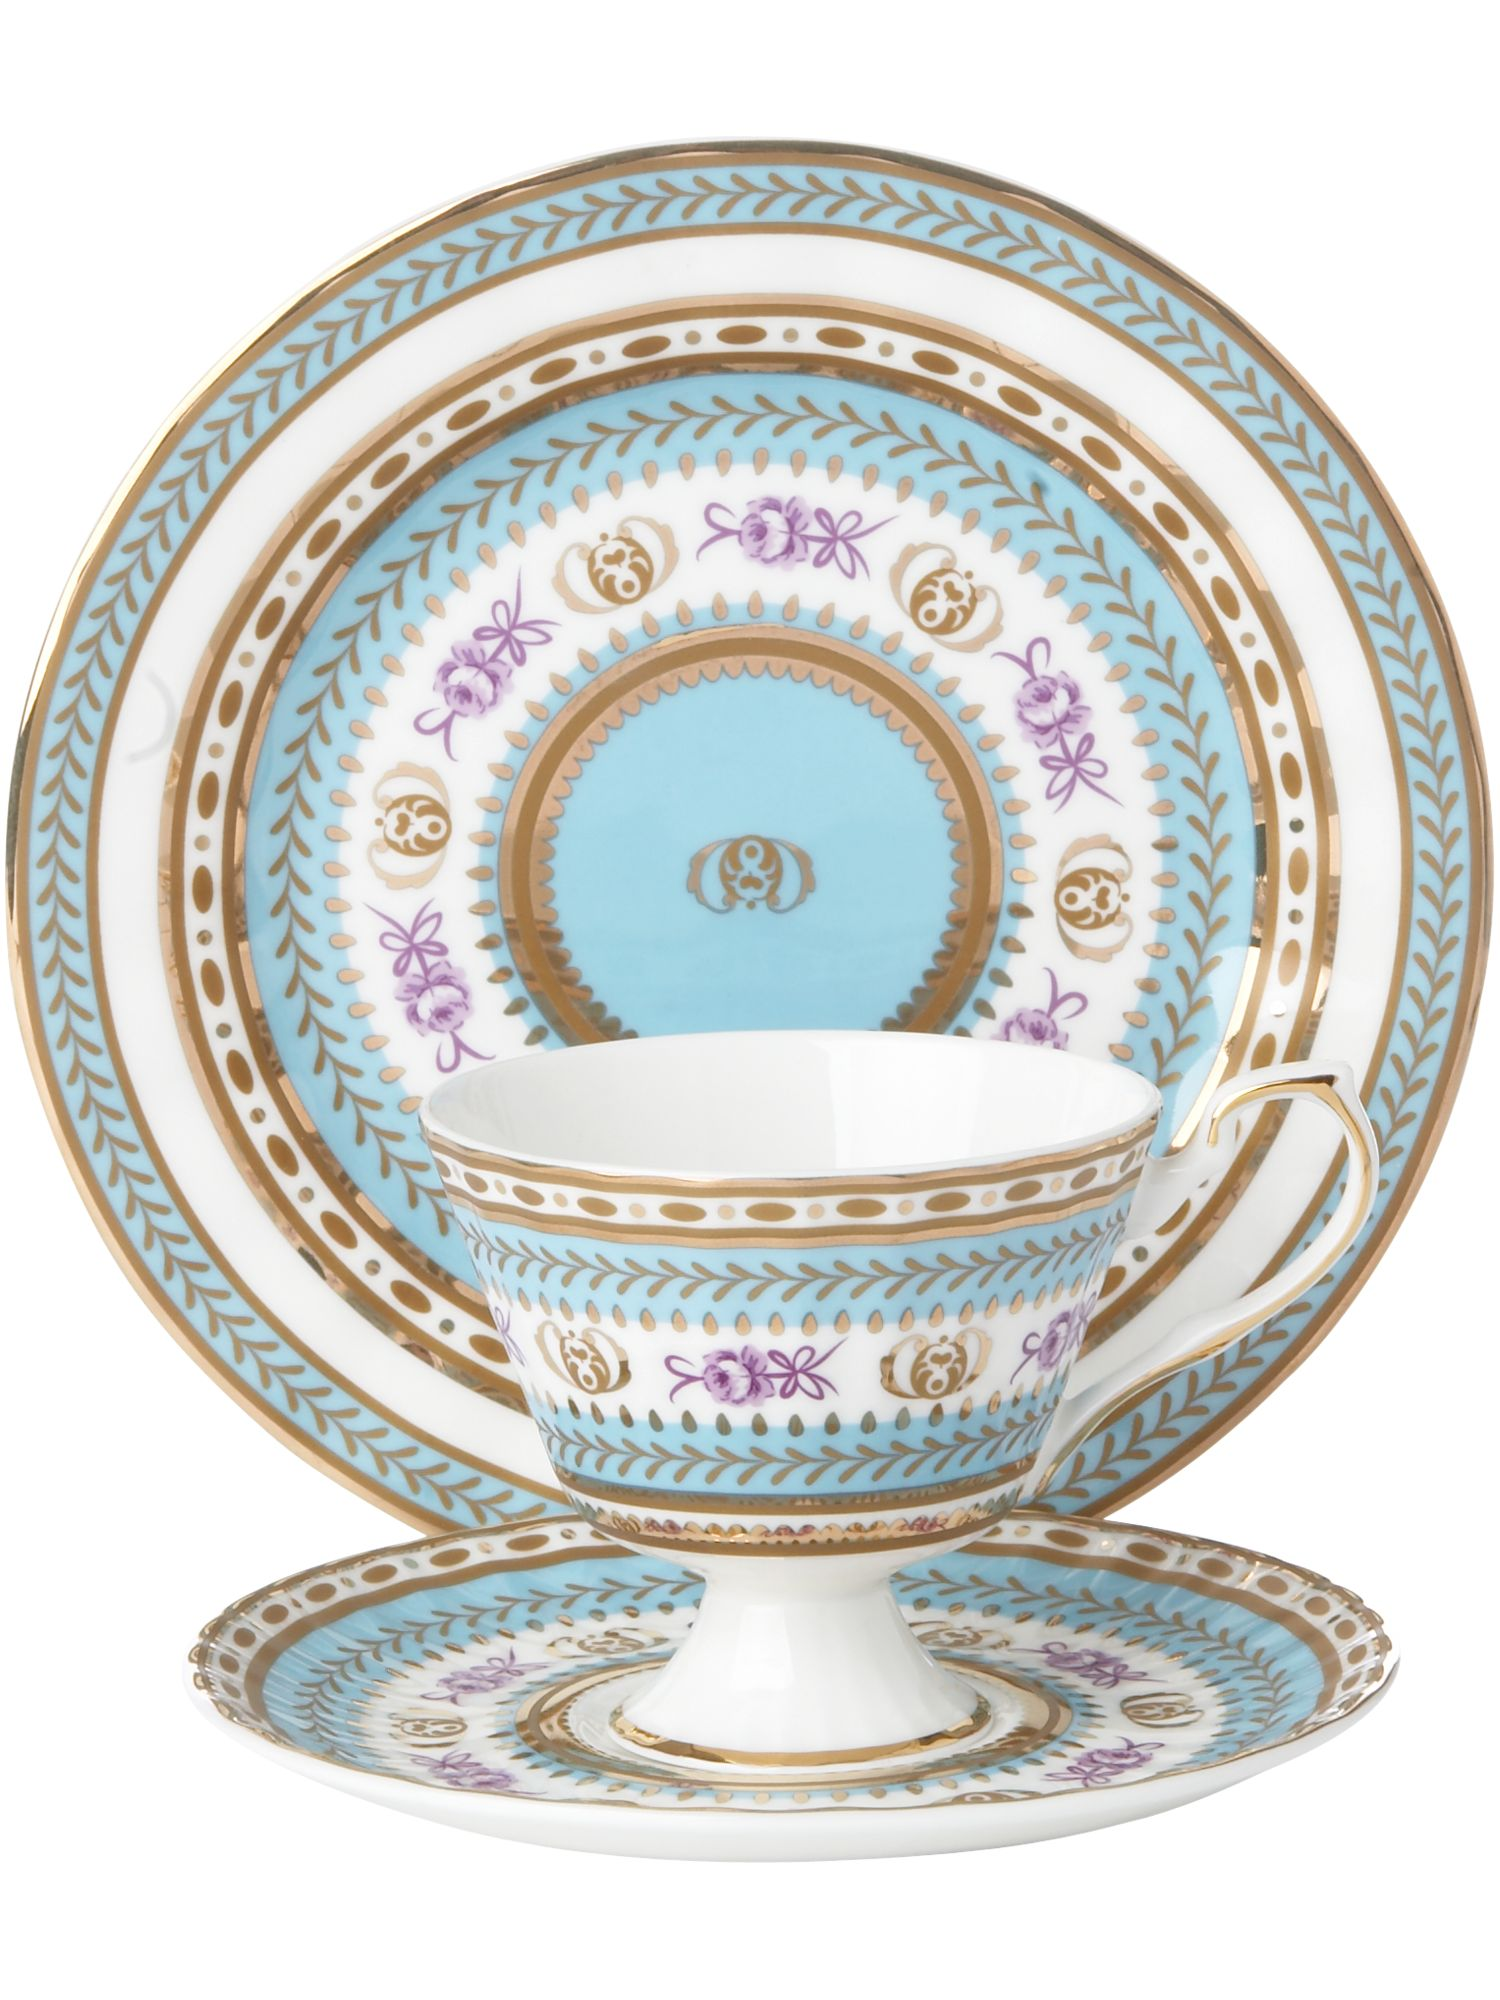 Fine bone china turquoise tea set